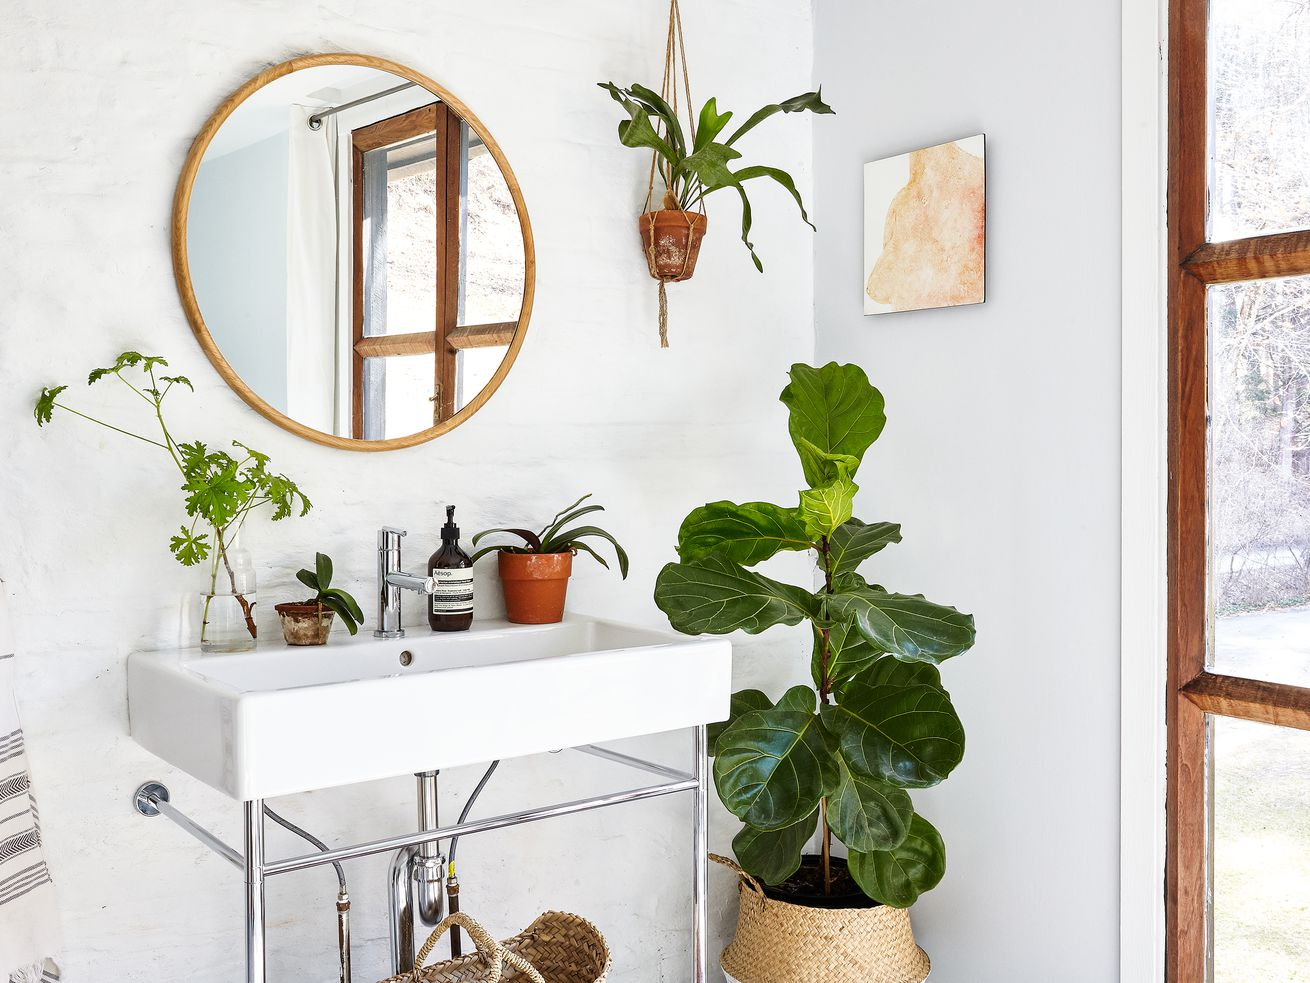 A bright bathroom with a round mirror. A large plant stands next to the sink. Three smaller plants sit on the sink. One more plant hangs on the wall.